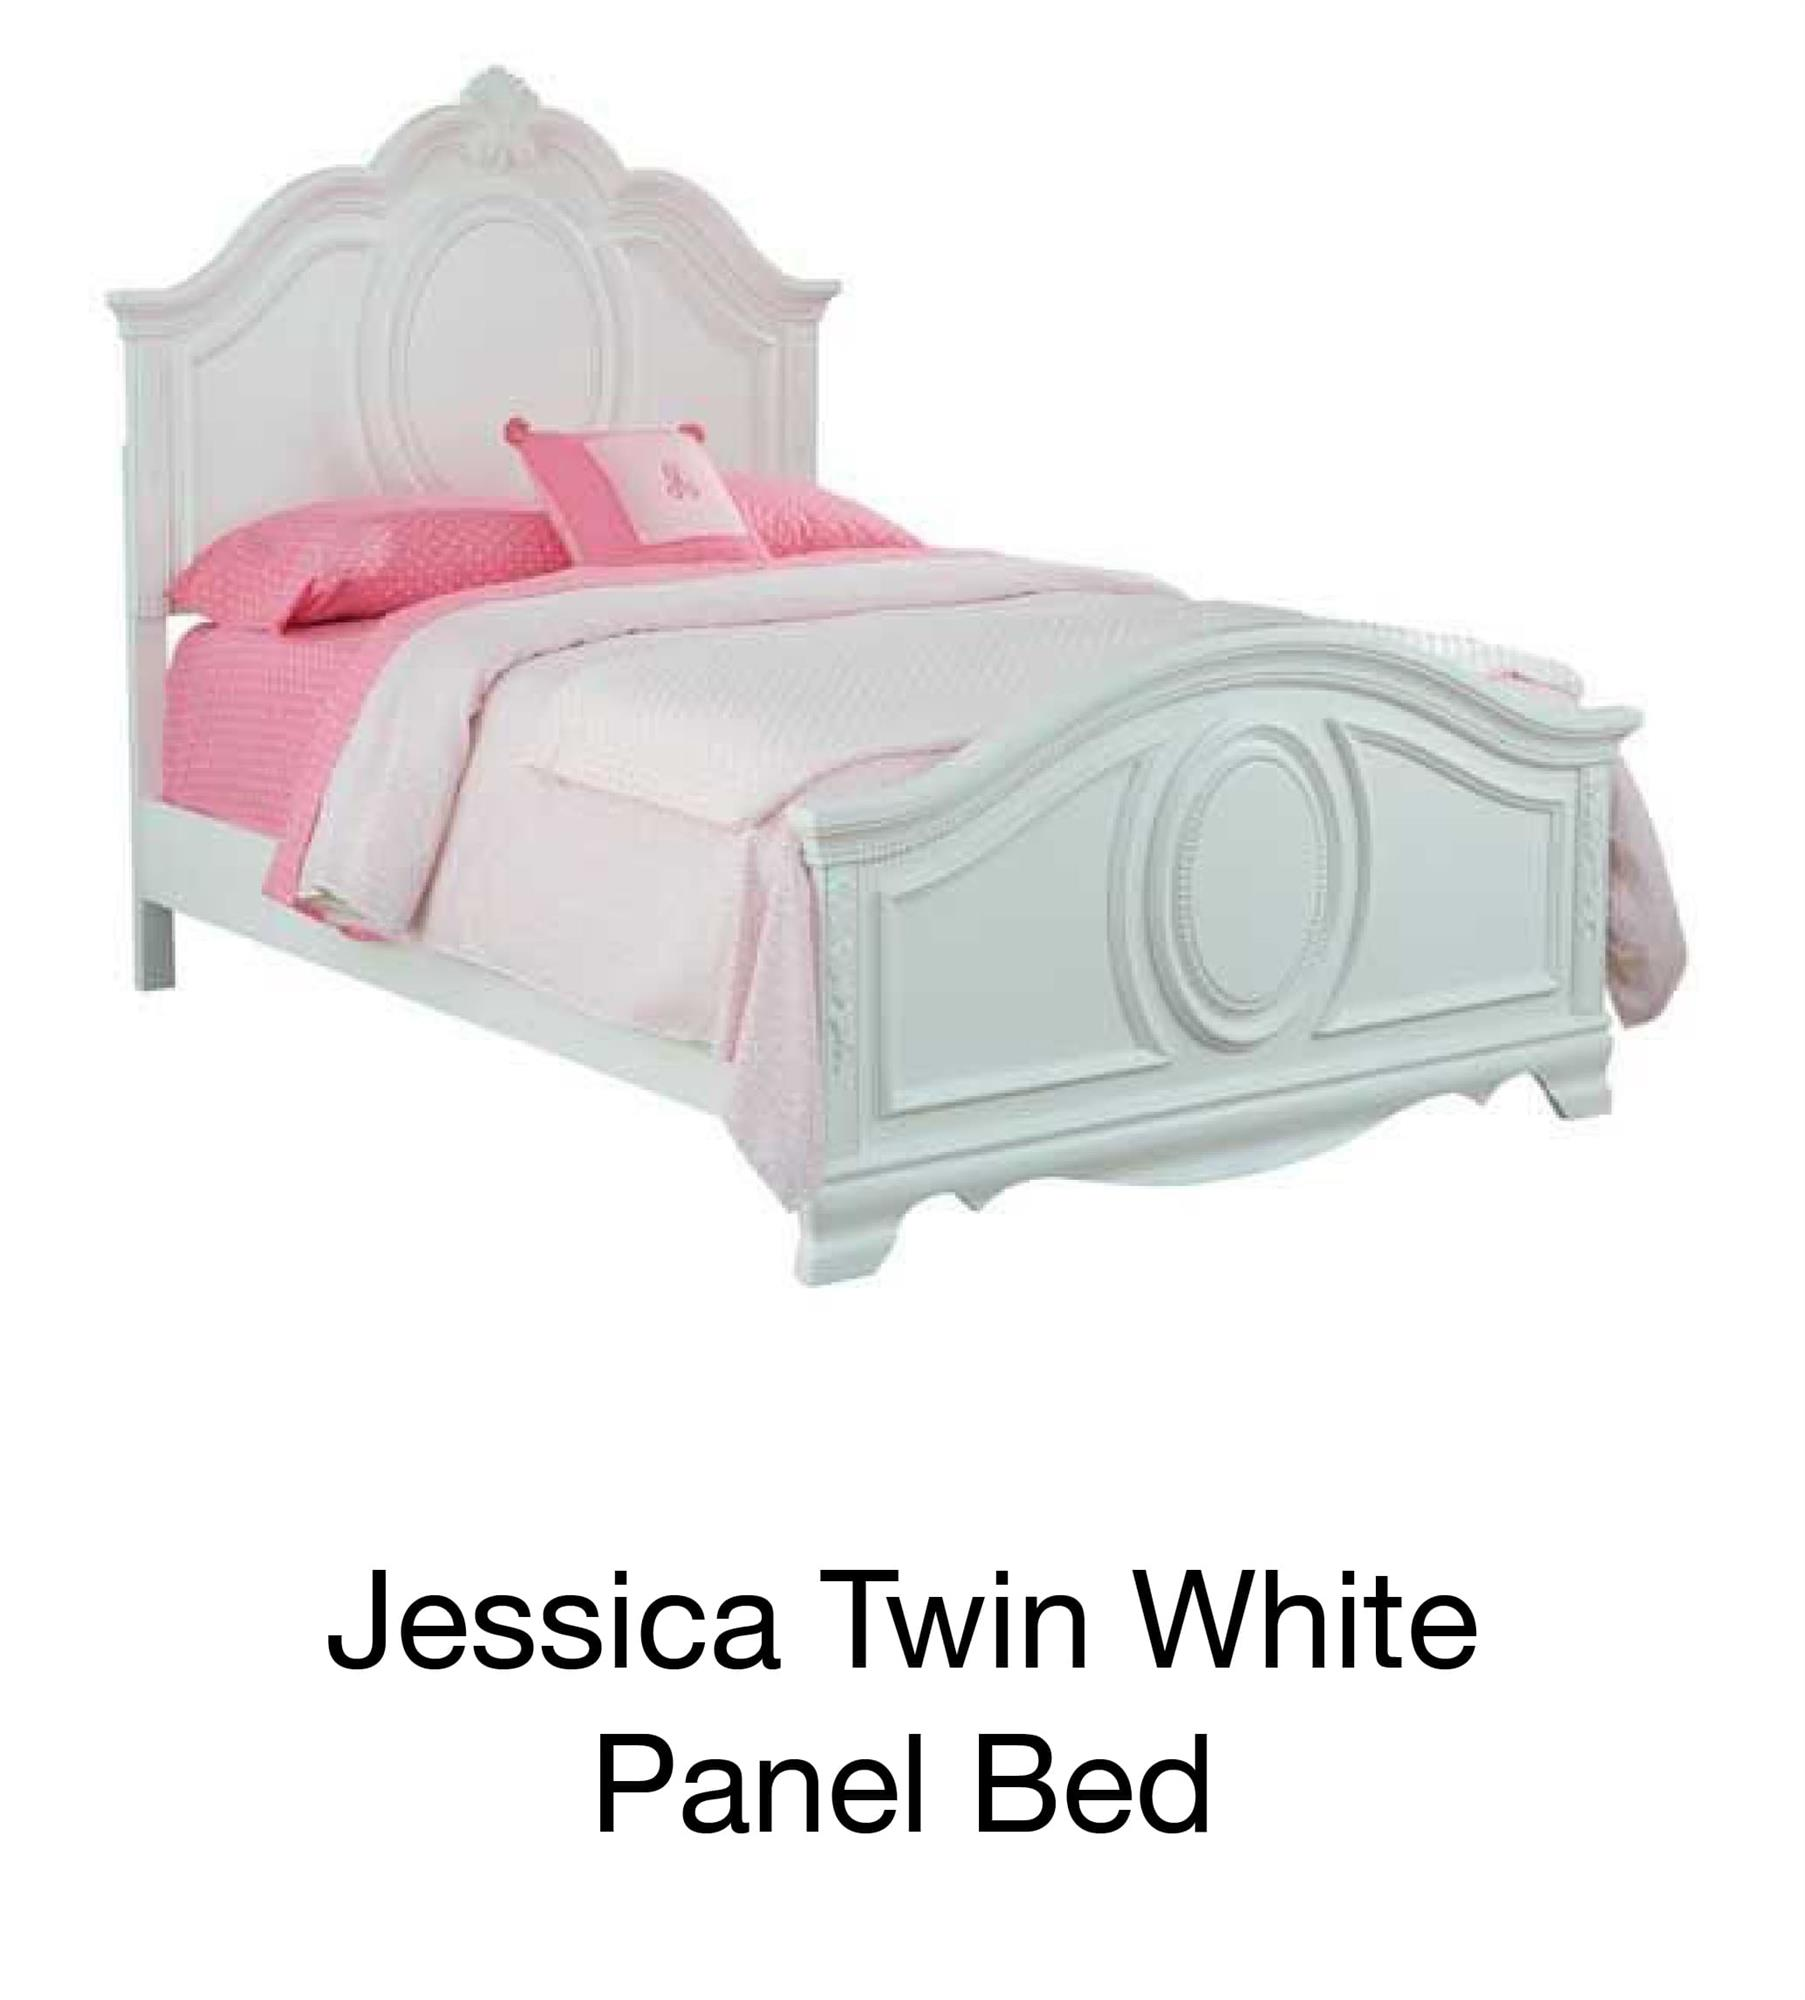 Jessica Twin White Panel Bed